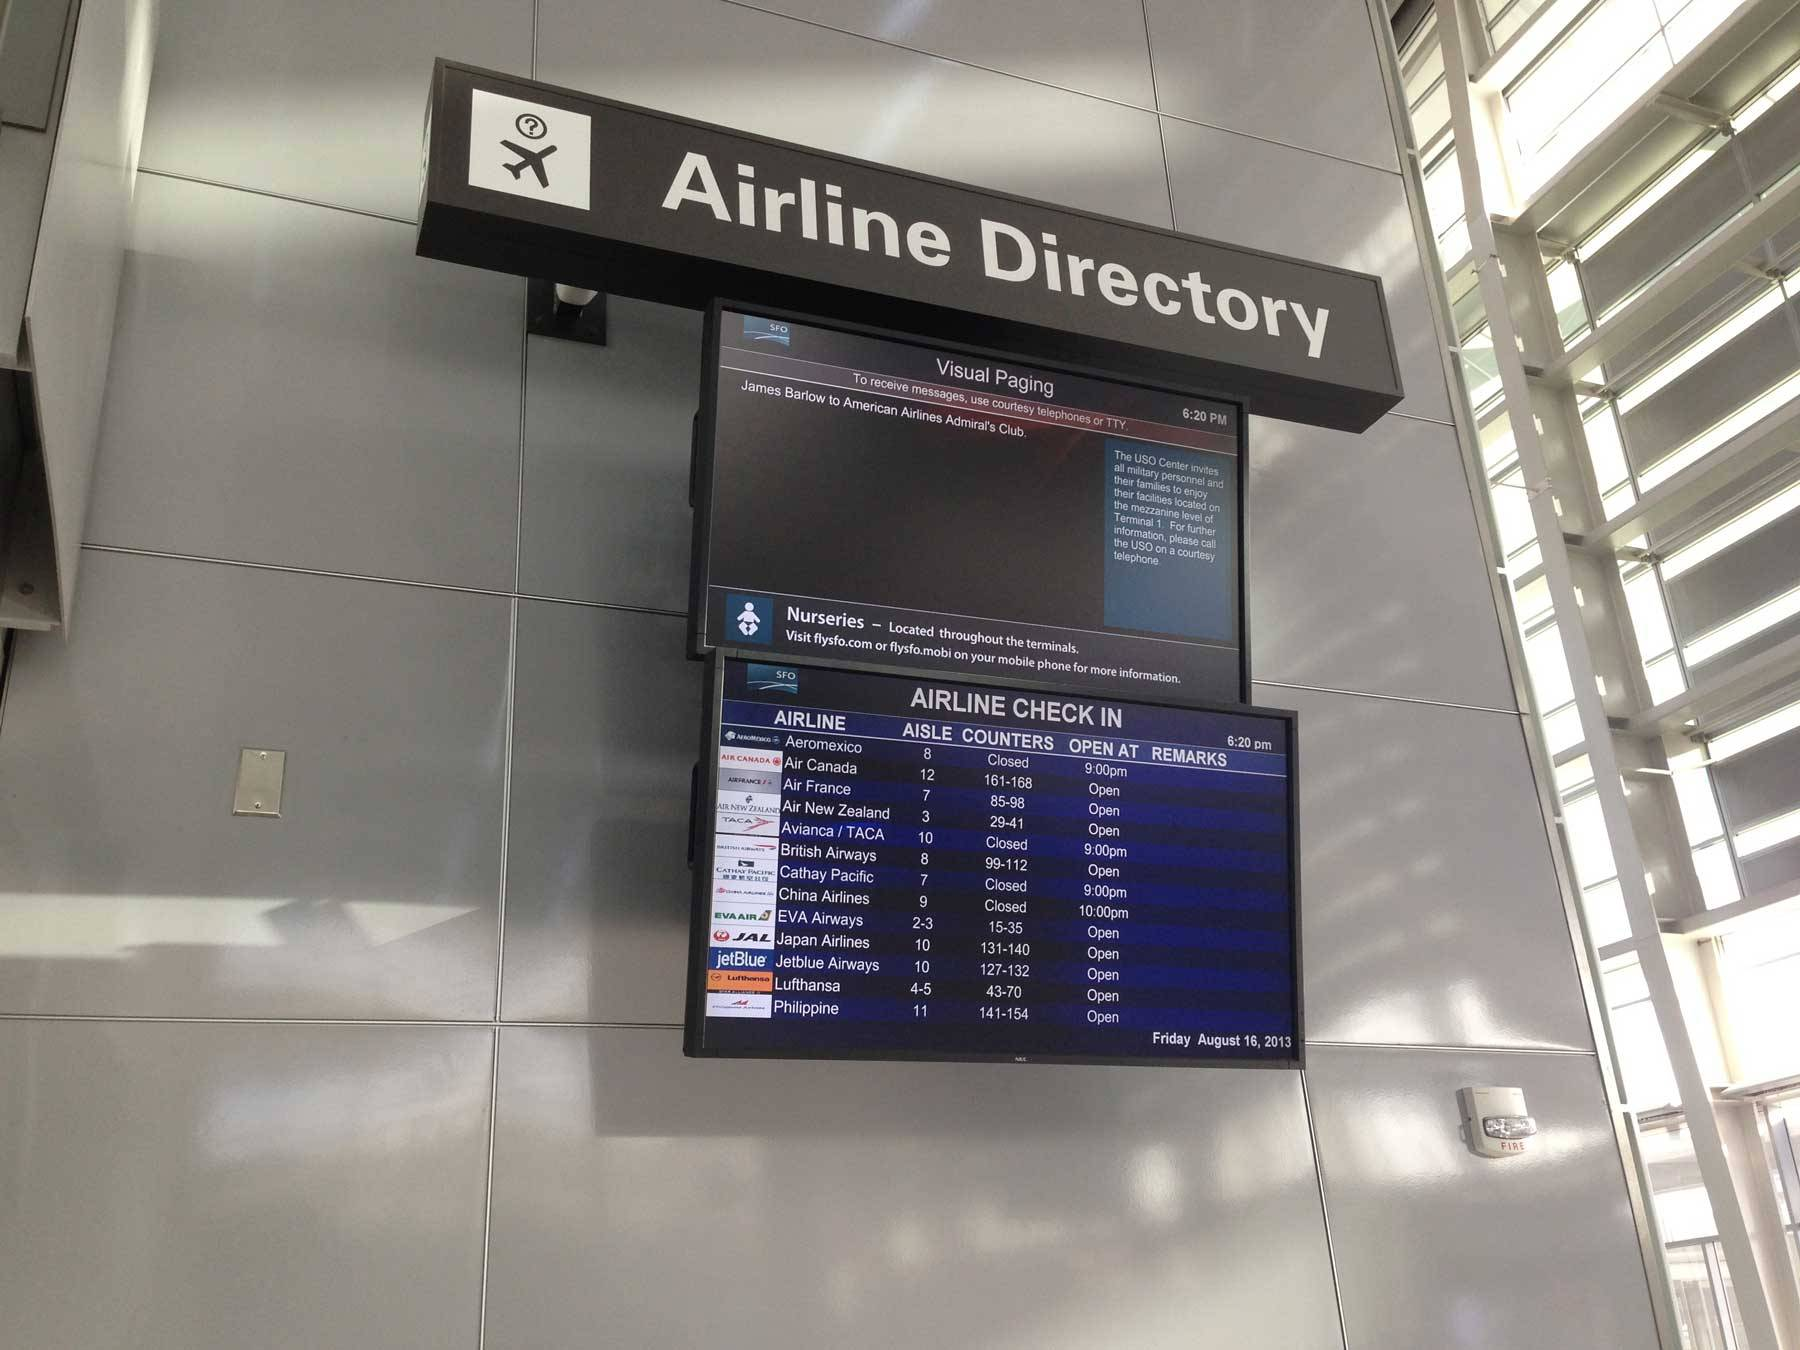 Airline directory